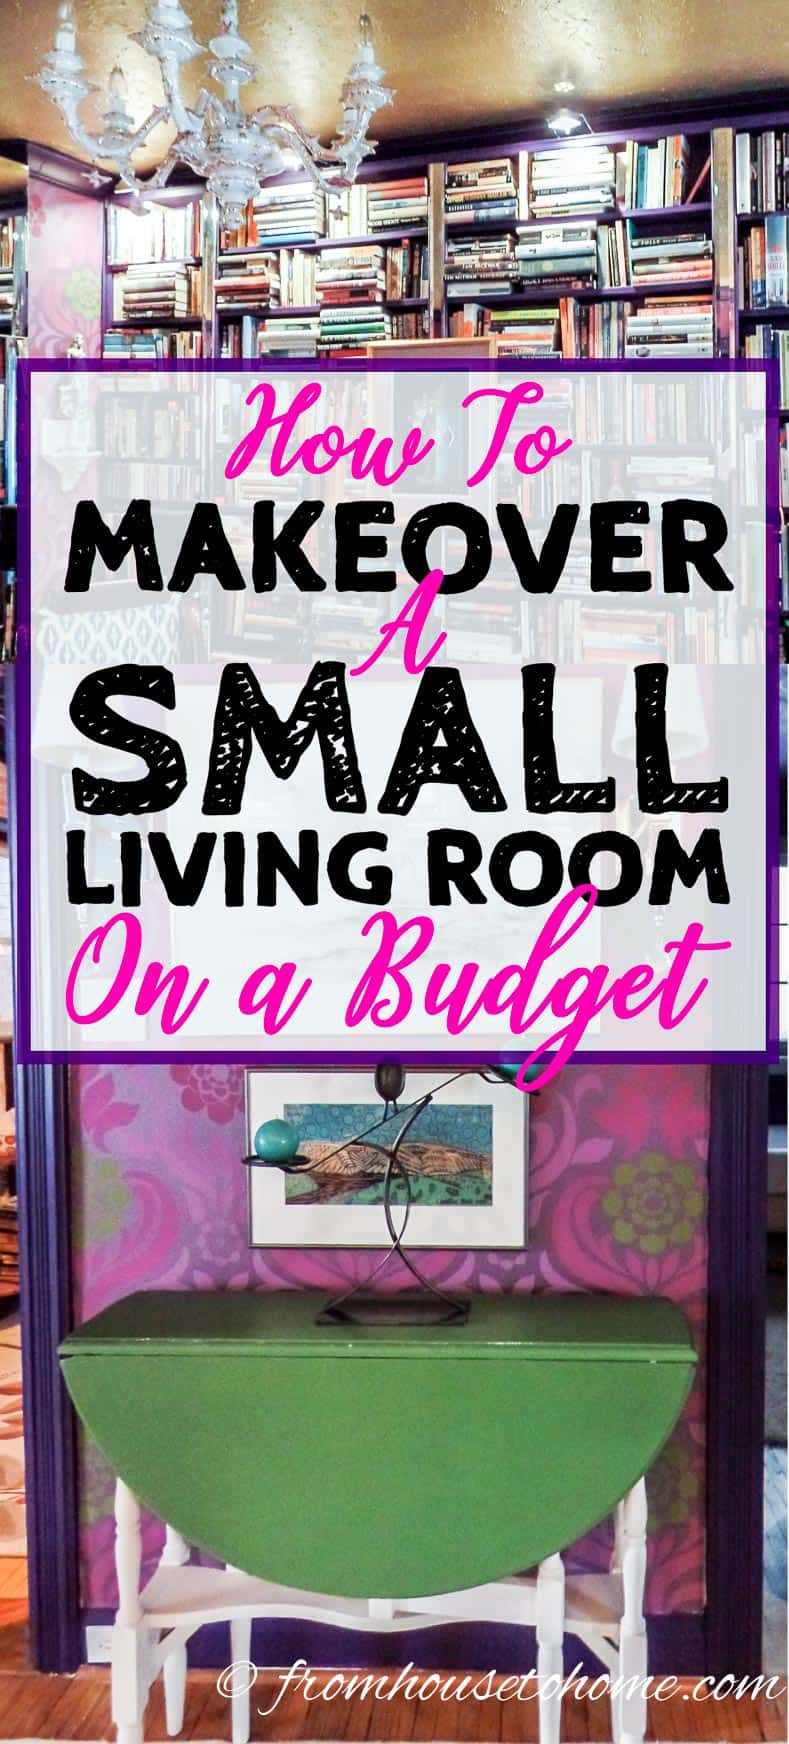 Apartment Decorating Ideas With Low Budget: How To Makeover A Small Living Room On A Budget